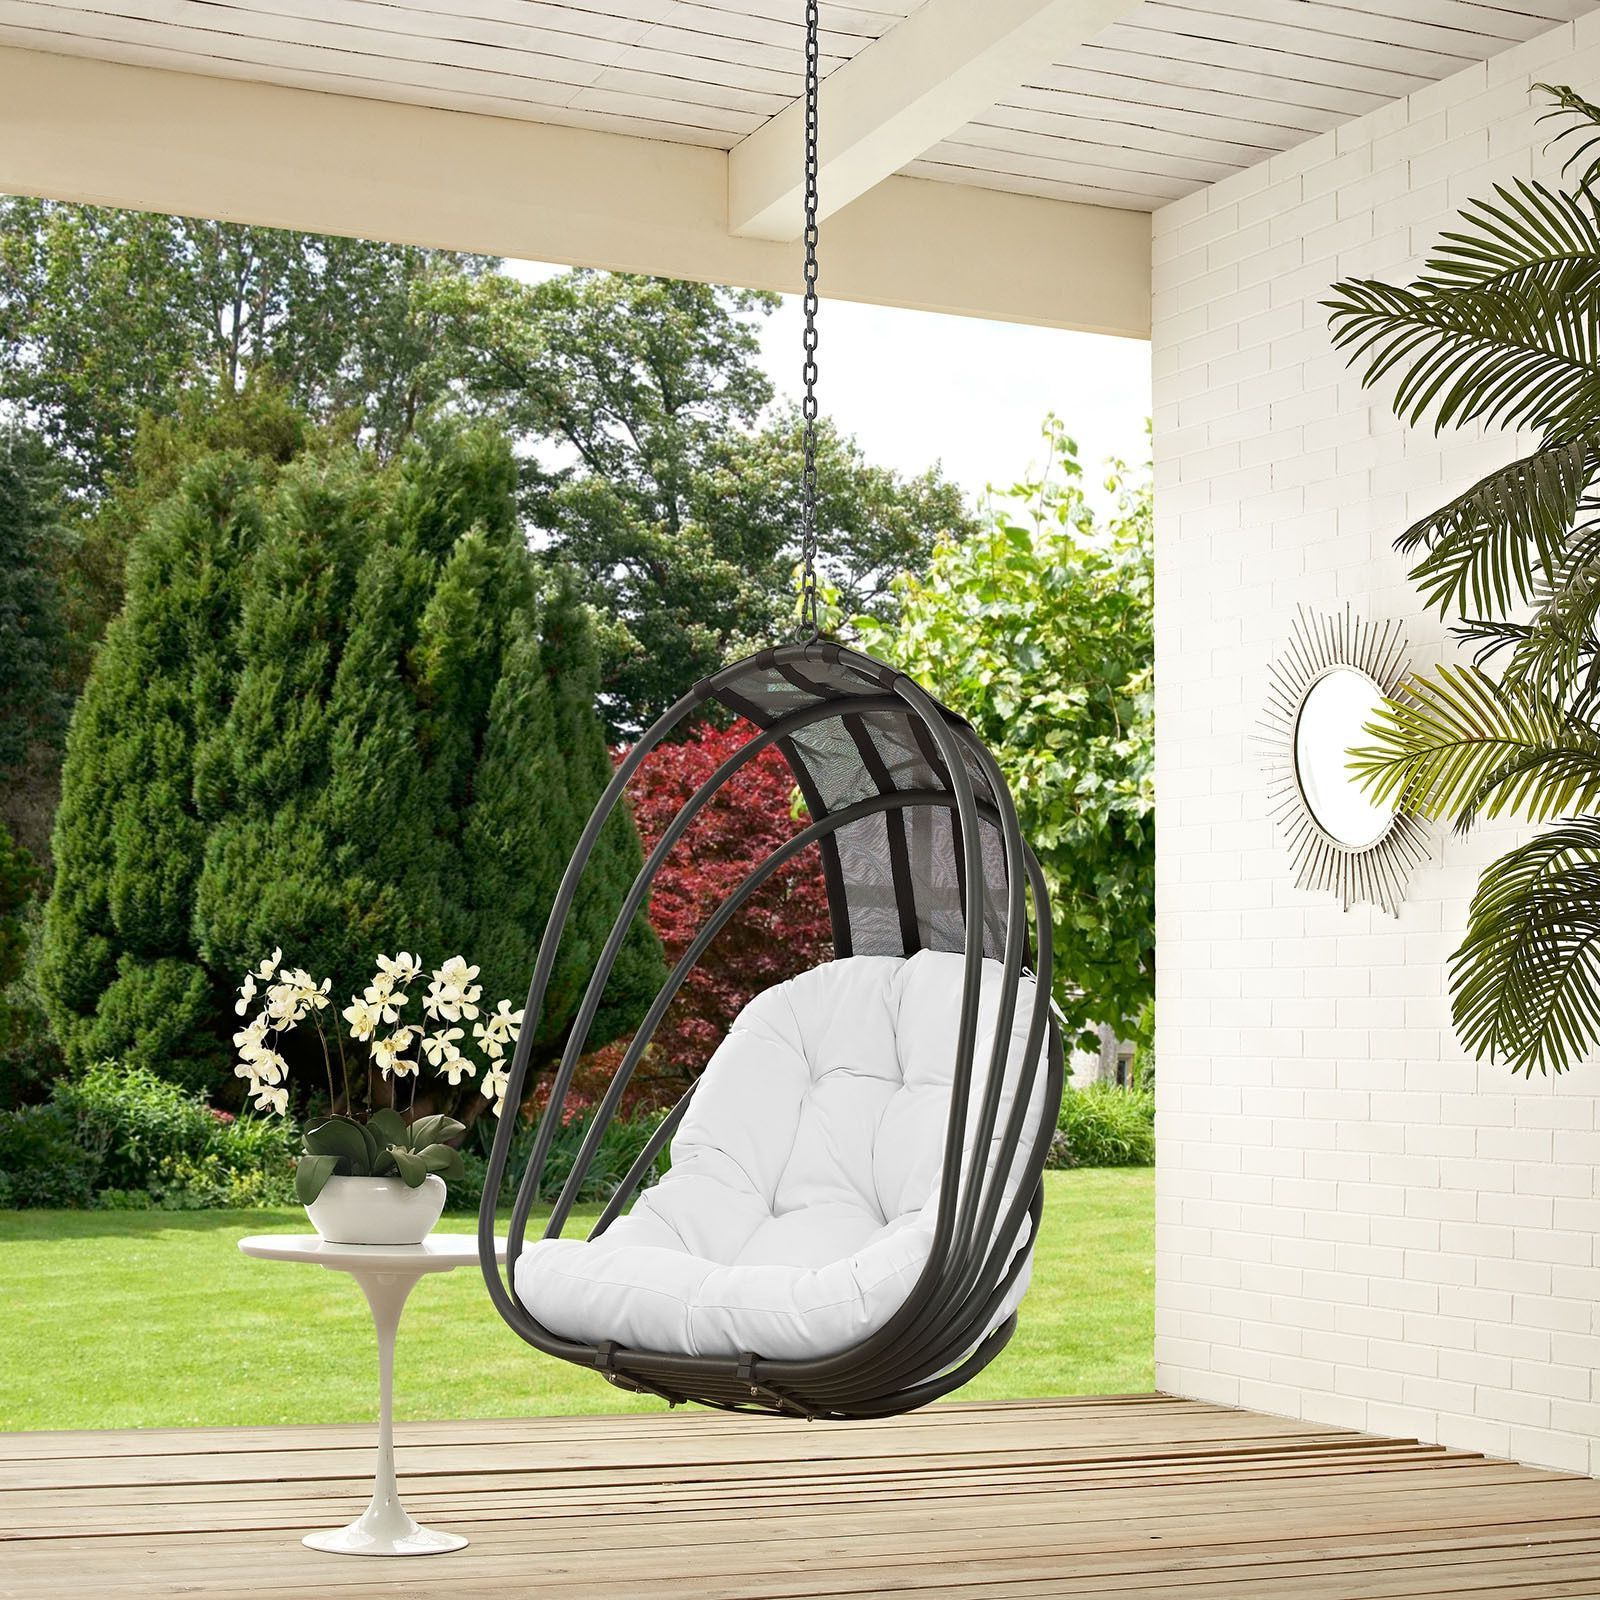 Current Stand Multiple Chair Set Modway Likable Rattan Glider Within Wicker Glider Outdoor Porch Swings With Stand (View 6 of 30)